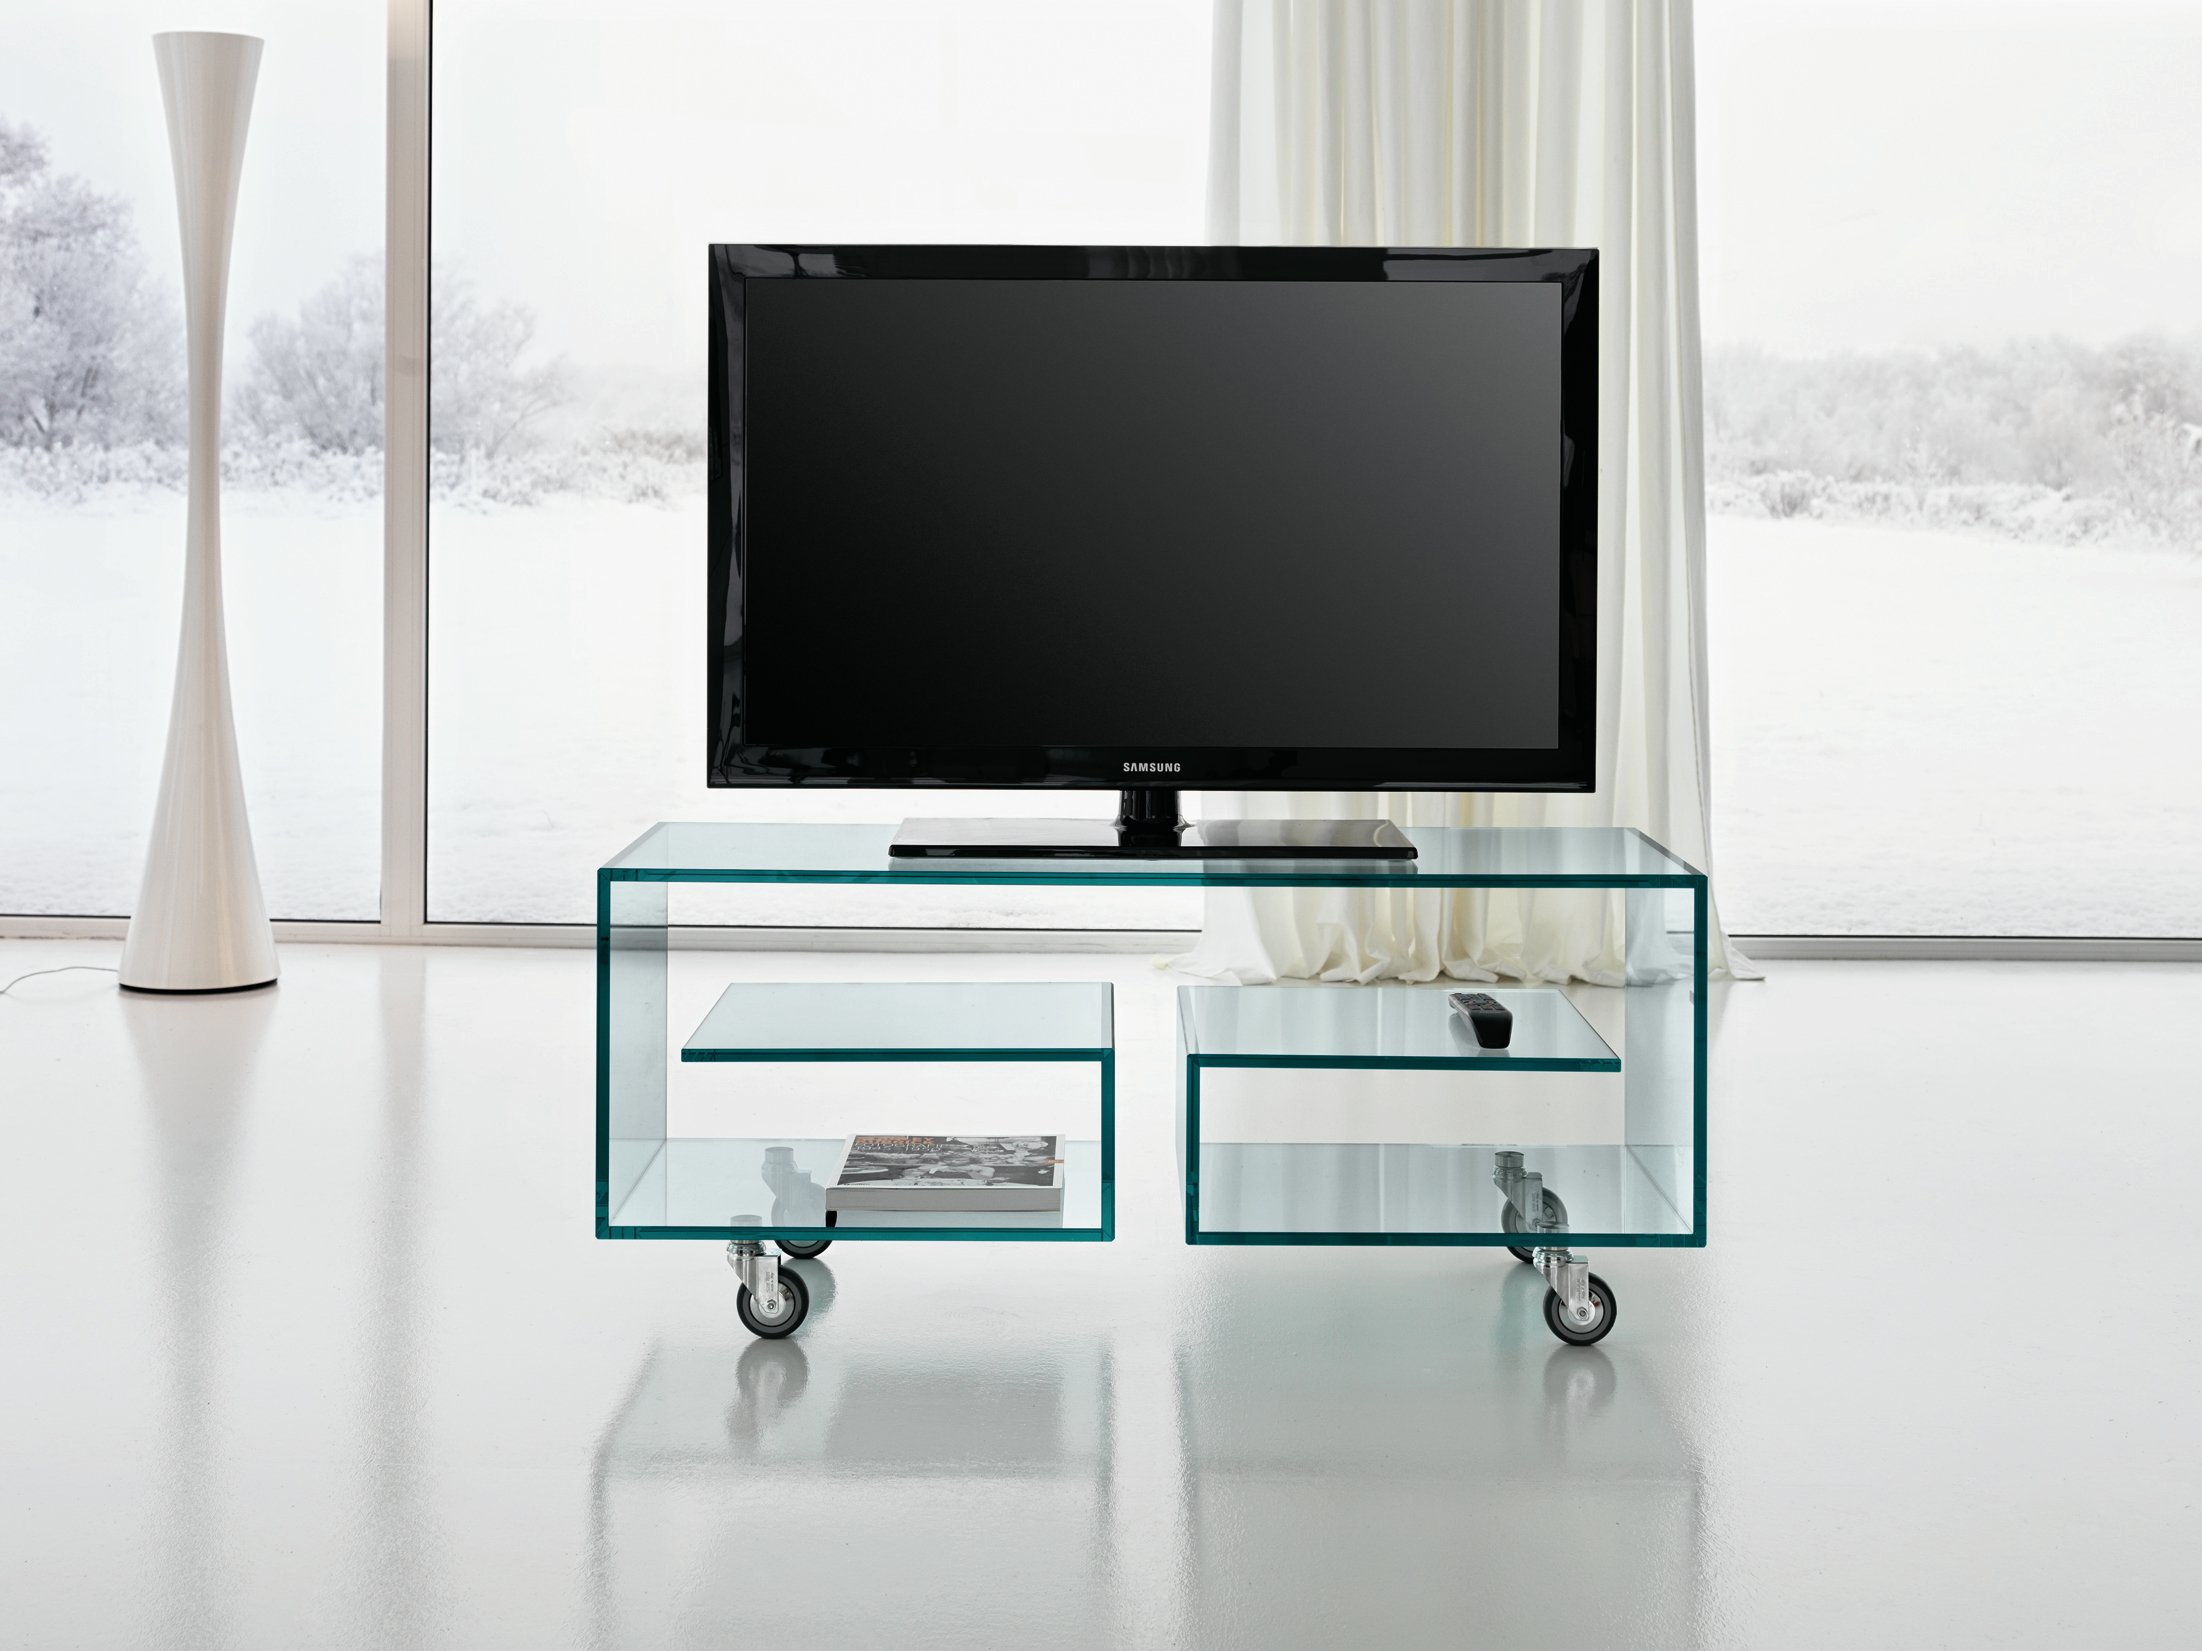 meuble tv en verre roulettes fl 1 by t d tonelli design design isao hosoe. Black Bedroom Furniture Sets. Home Design Ideas